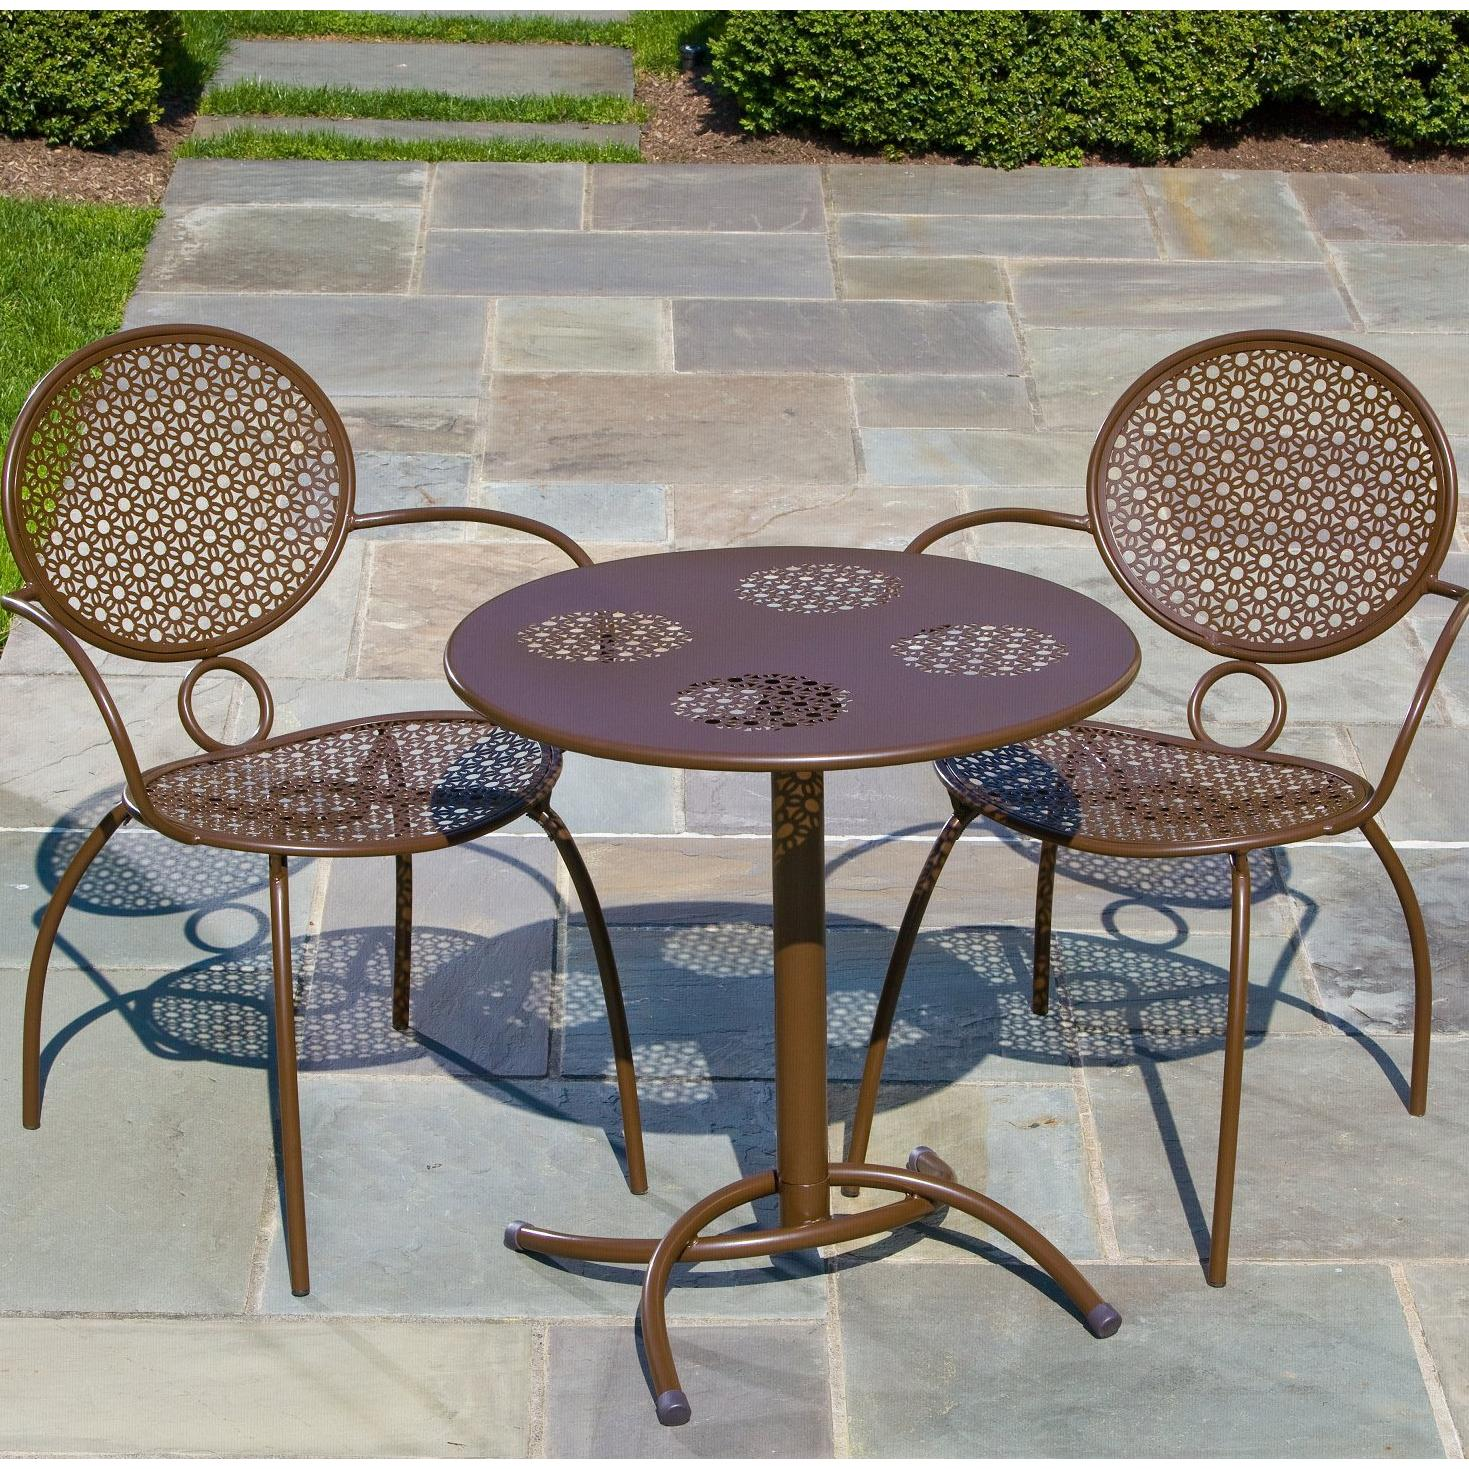 furniture gt outdoor furniture gt iron gt patio paint wrought